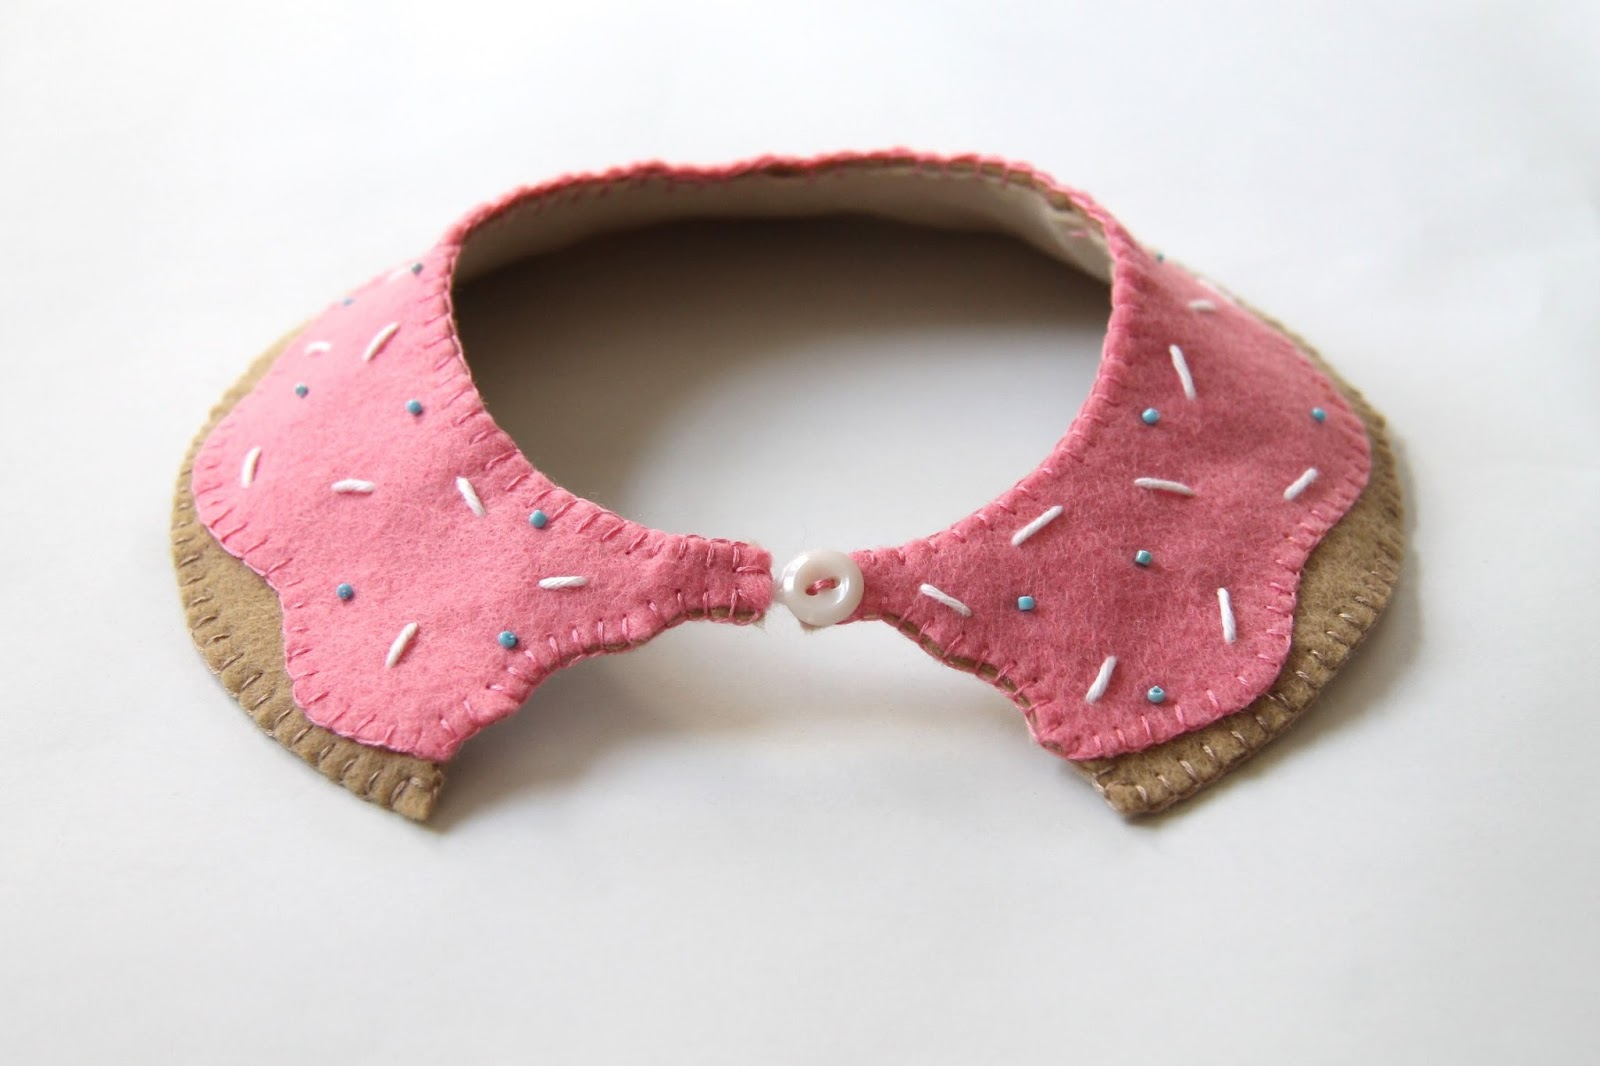 DIY Pink Doughnut Collar Tutorial